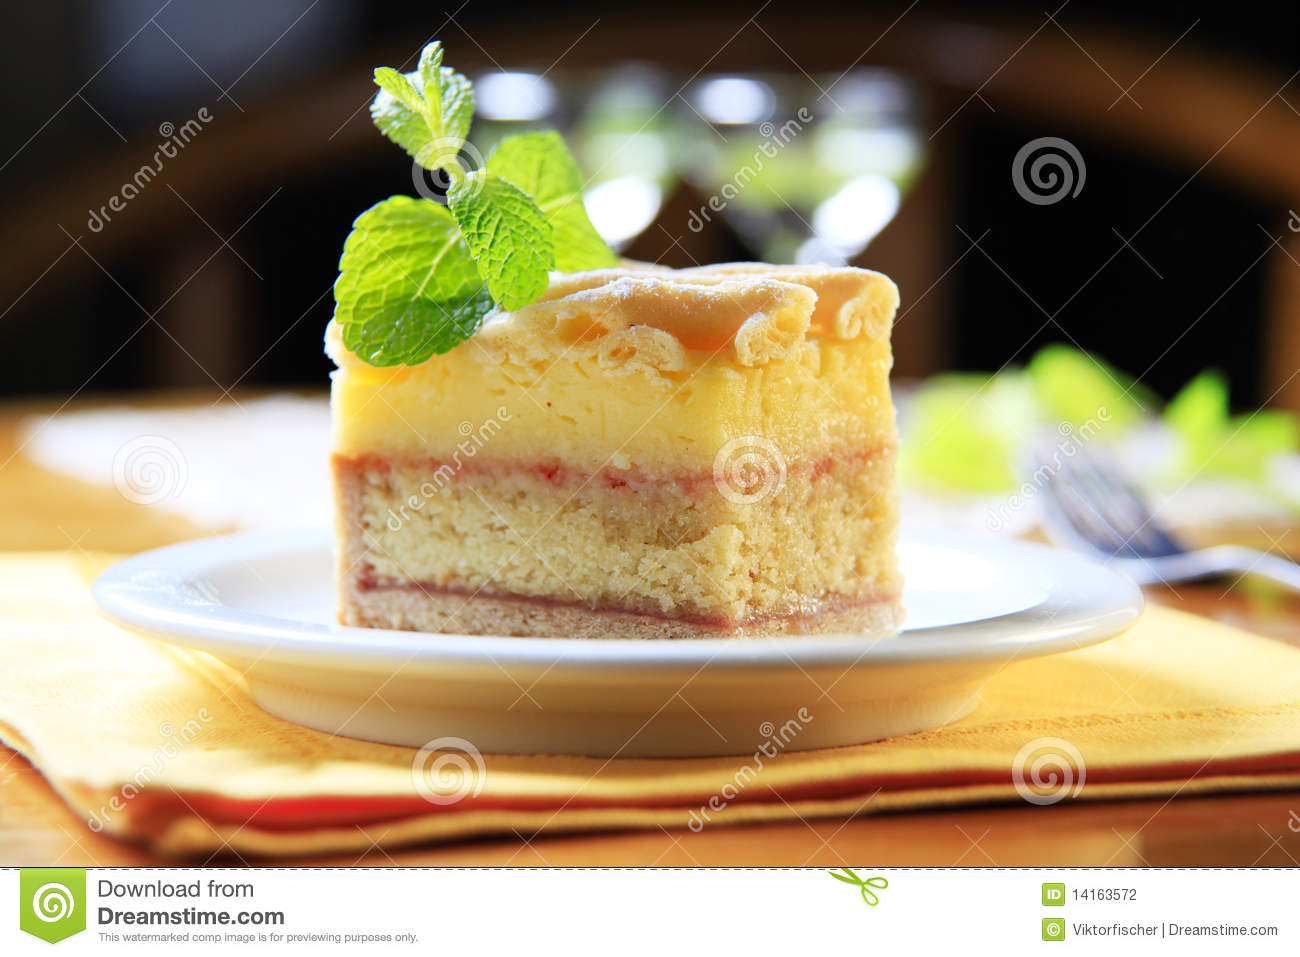 Rum Cake Stock Photography - Image: 14163572